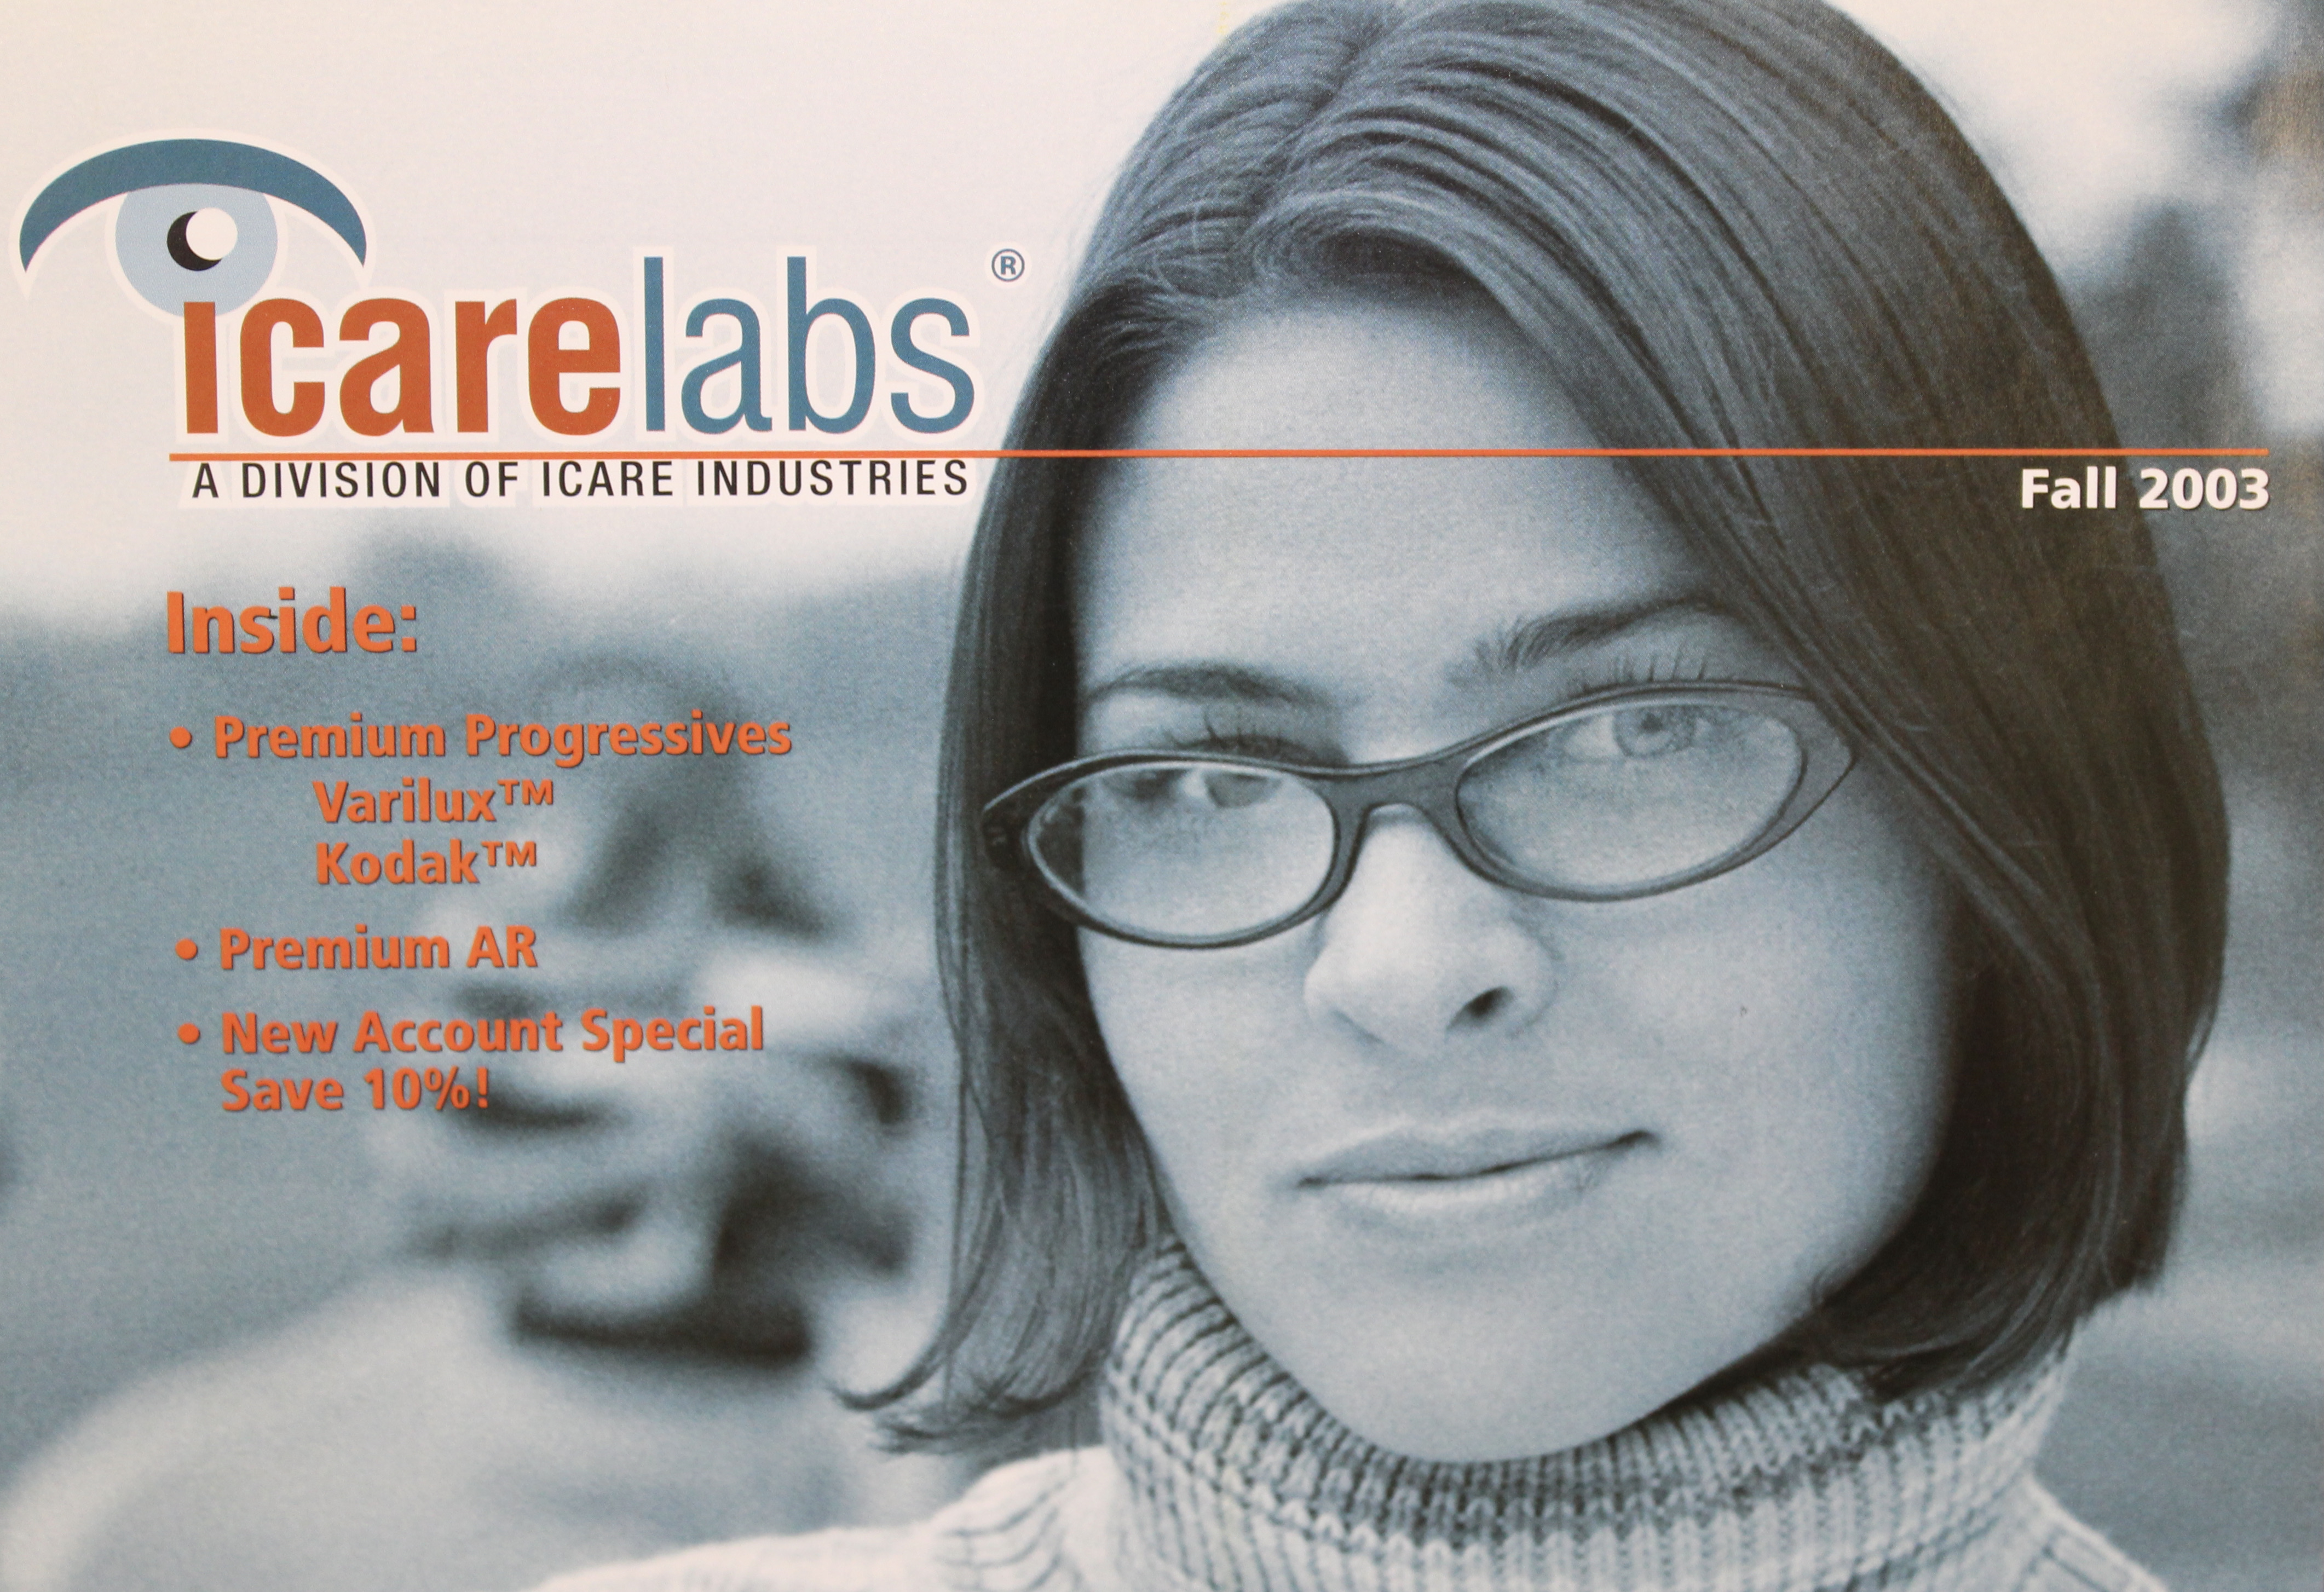 IcareLabs 2000s Fall 2003 Picture